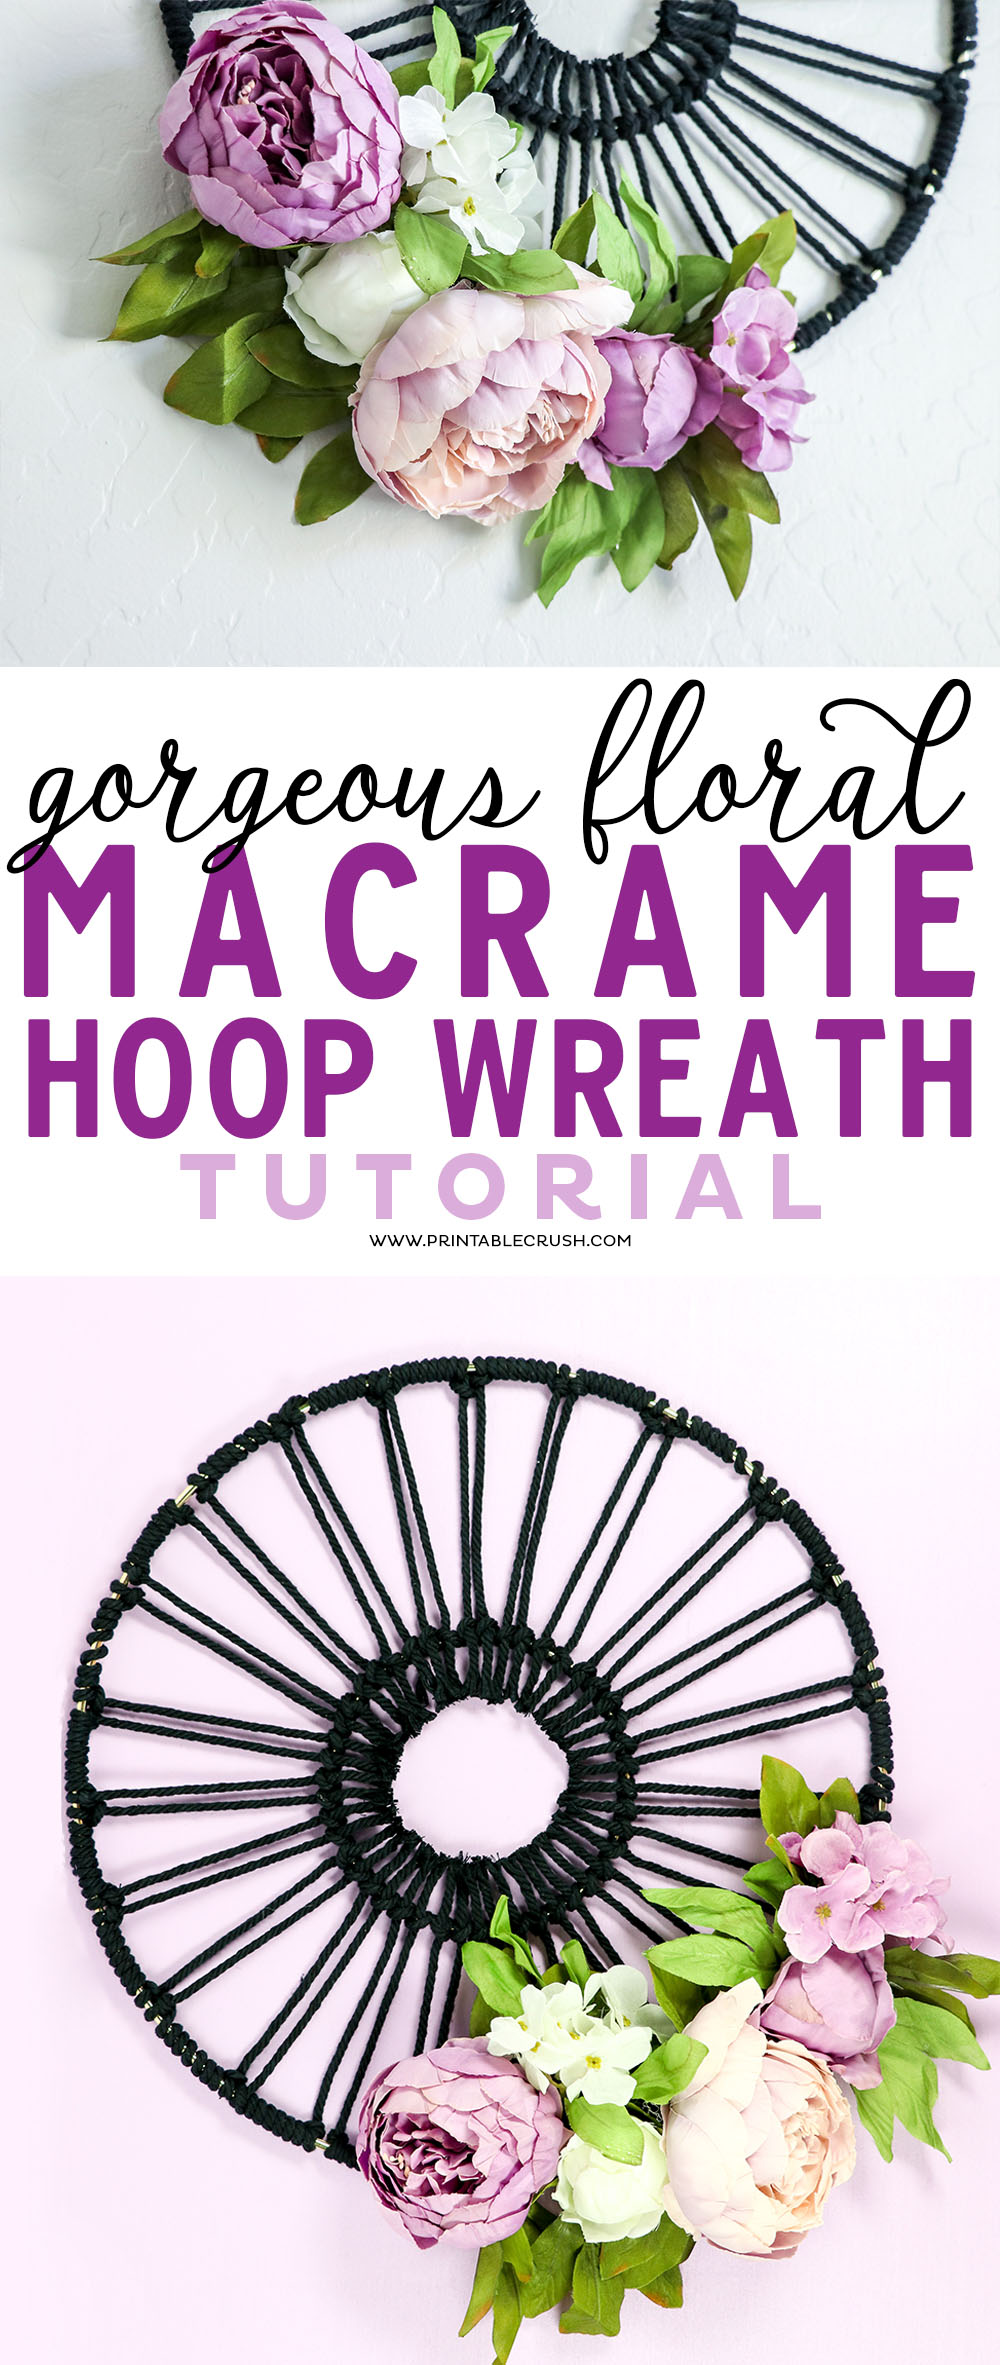 Gorgeous Floral Macrame Hoop Wreath Tutorial